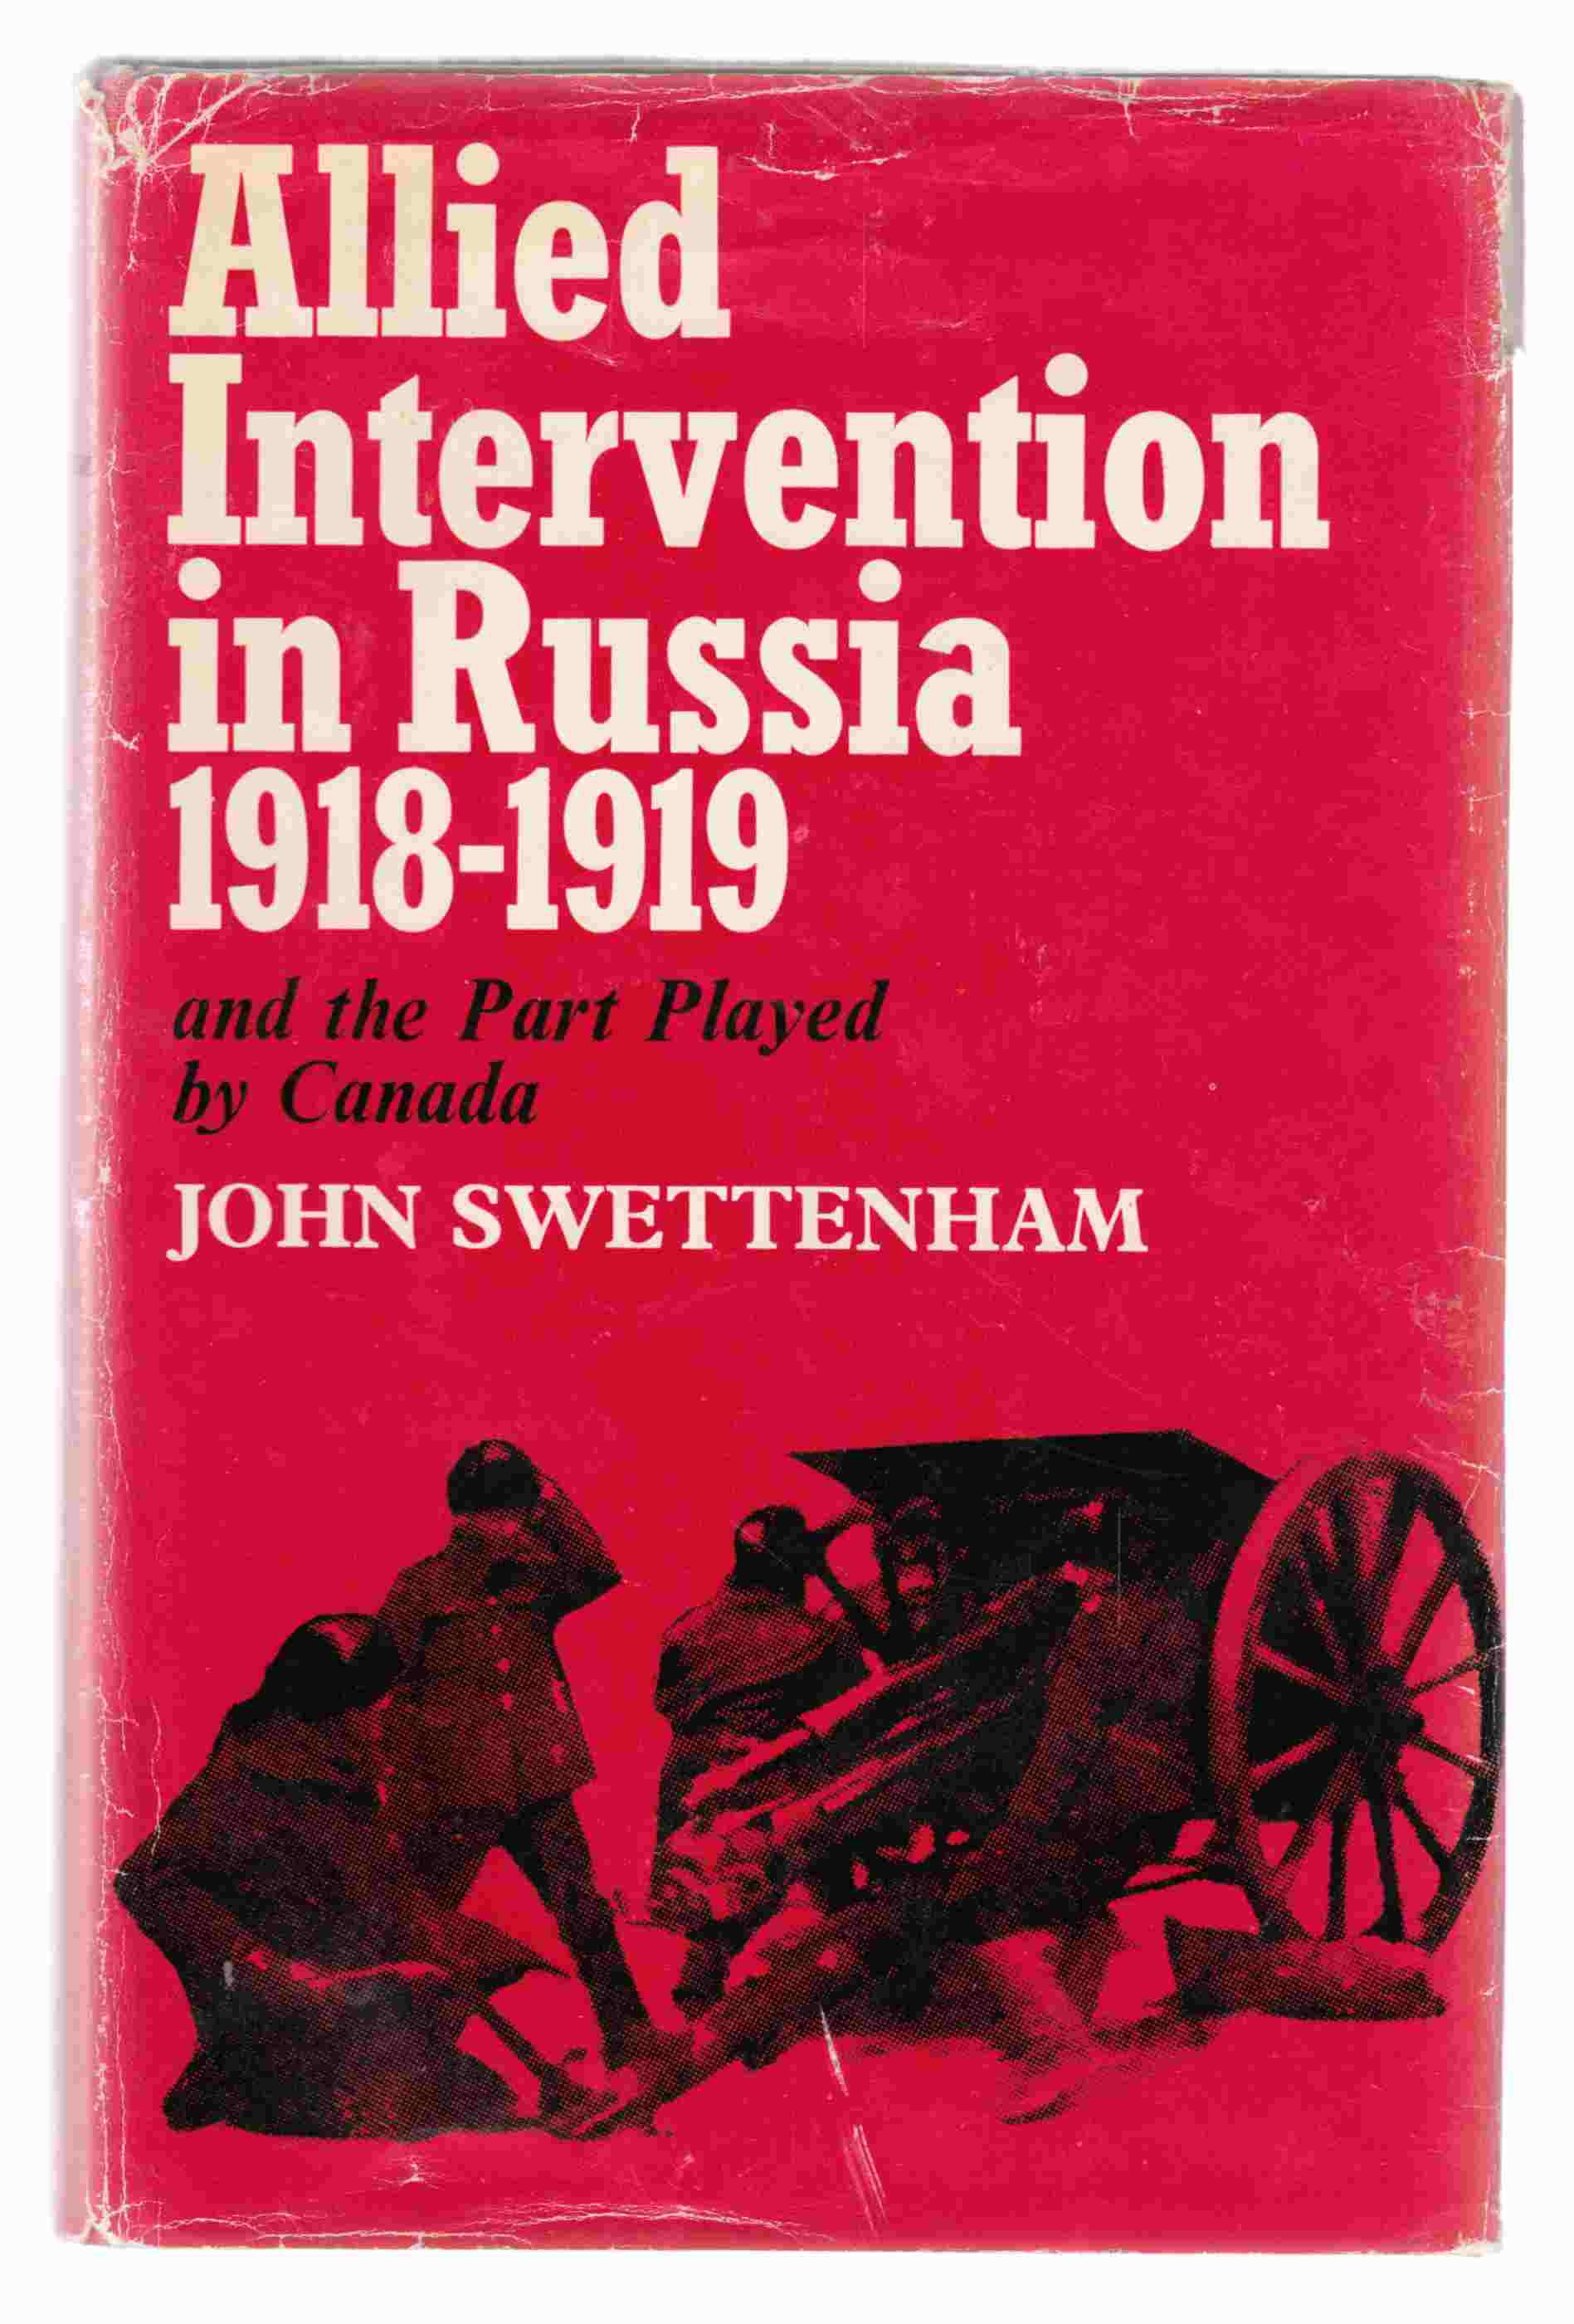 Image for Allied Intervention in Russia 1918-1919 And the Part Played by Canada